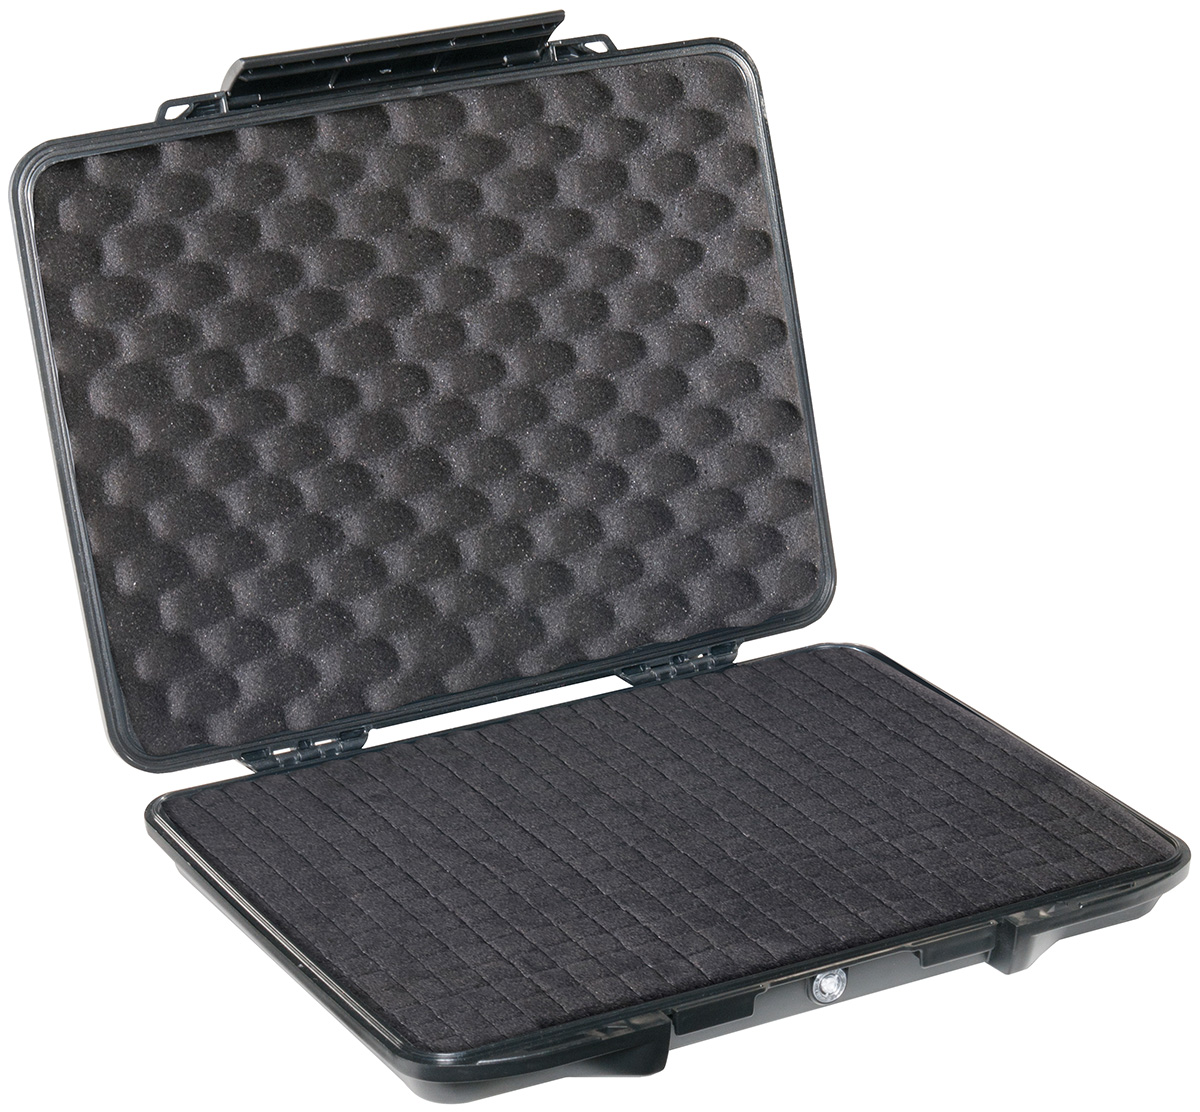 pelican tough waterproof laptop lifetime case